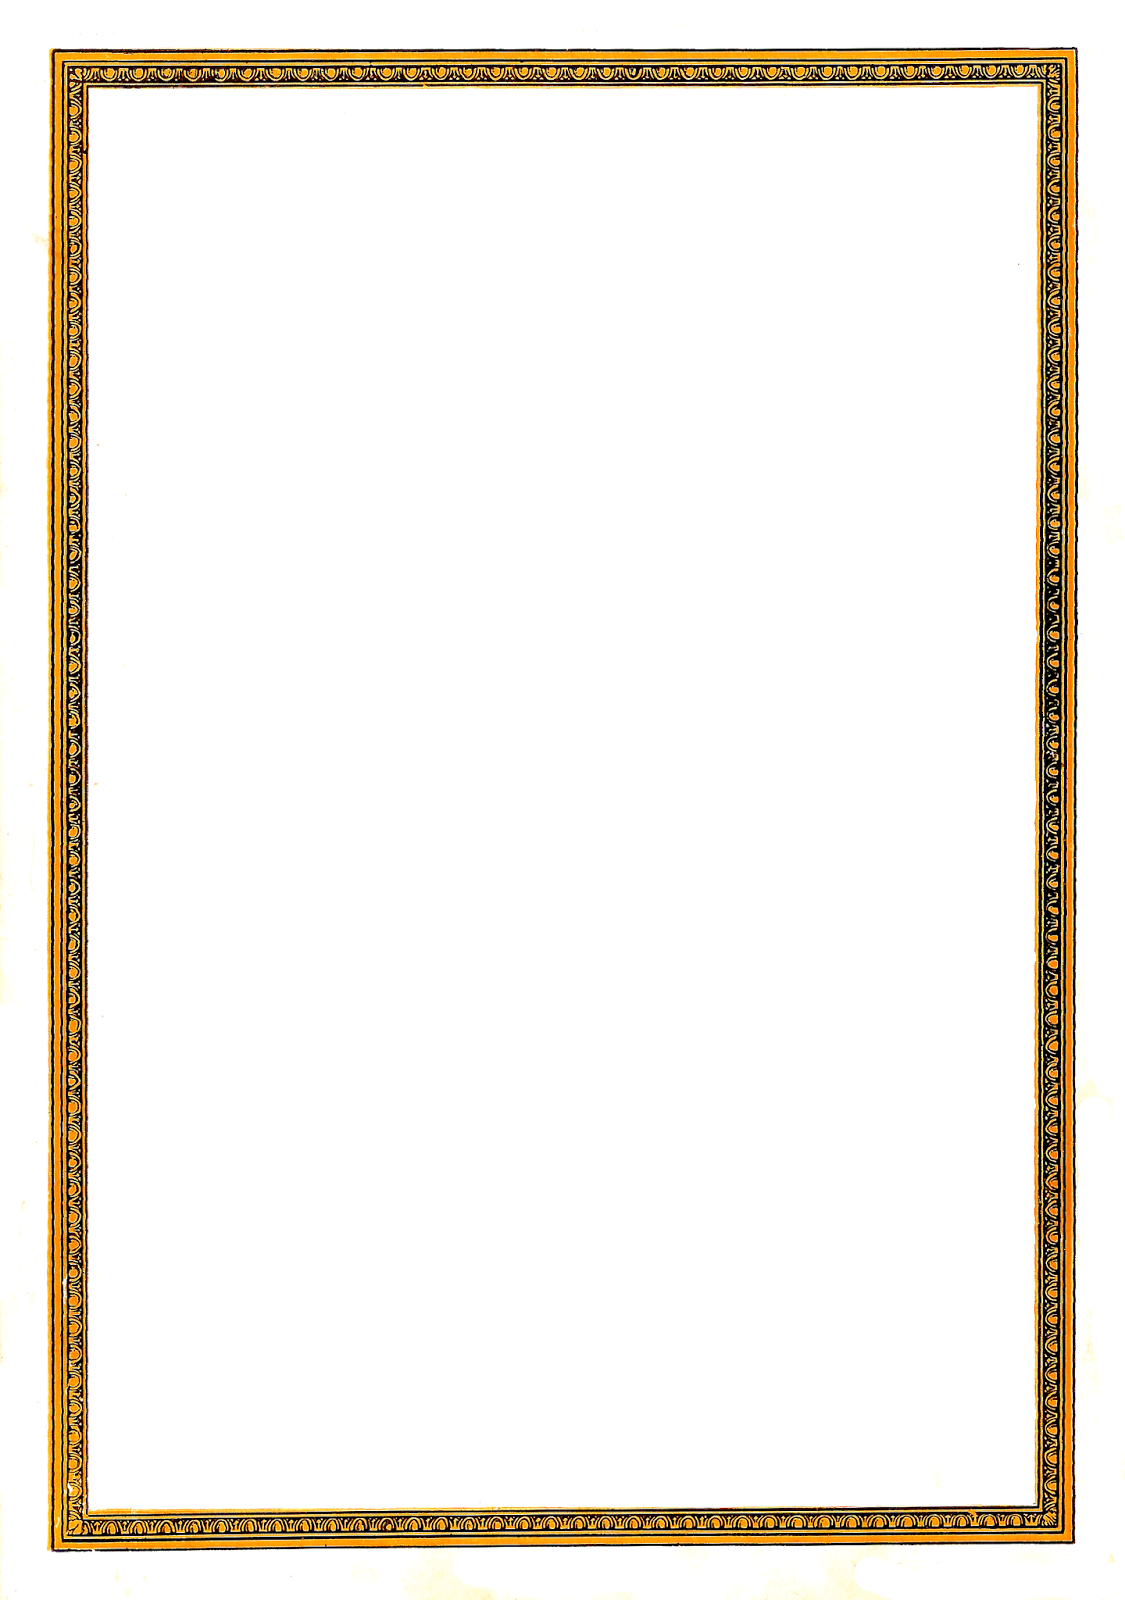 decorative clipart frames - photo #10